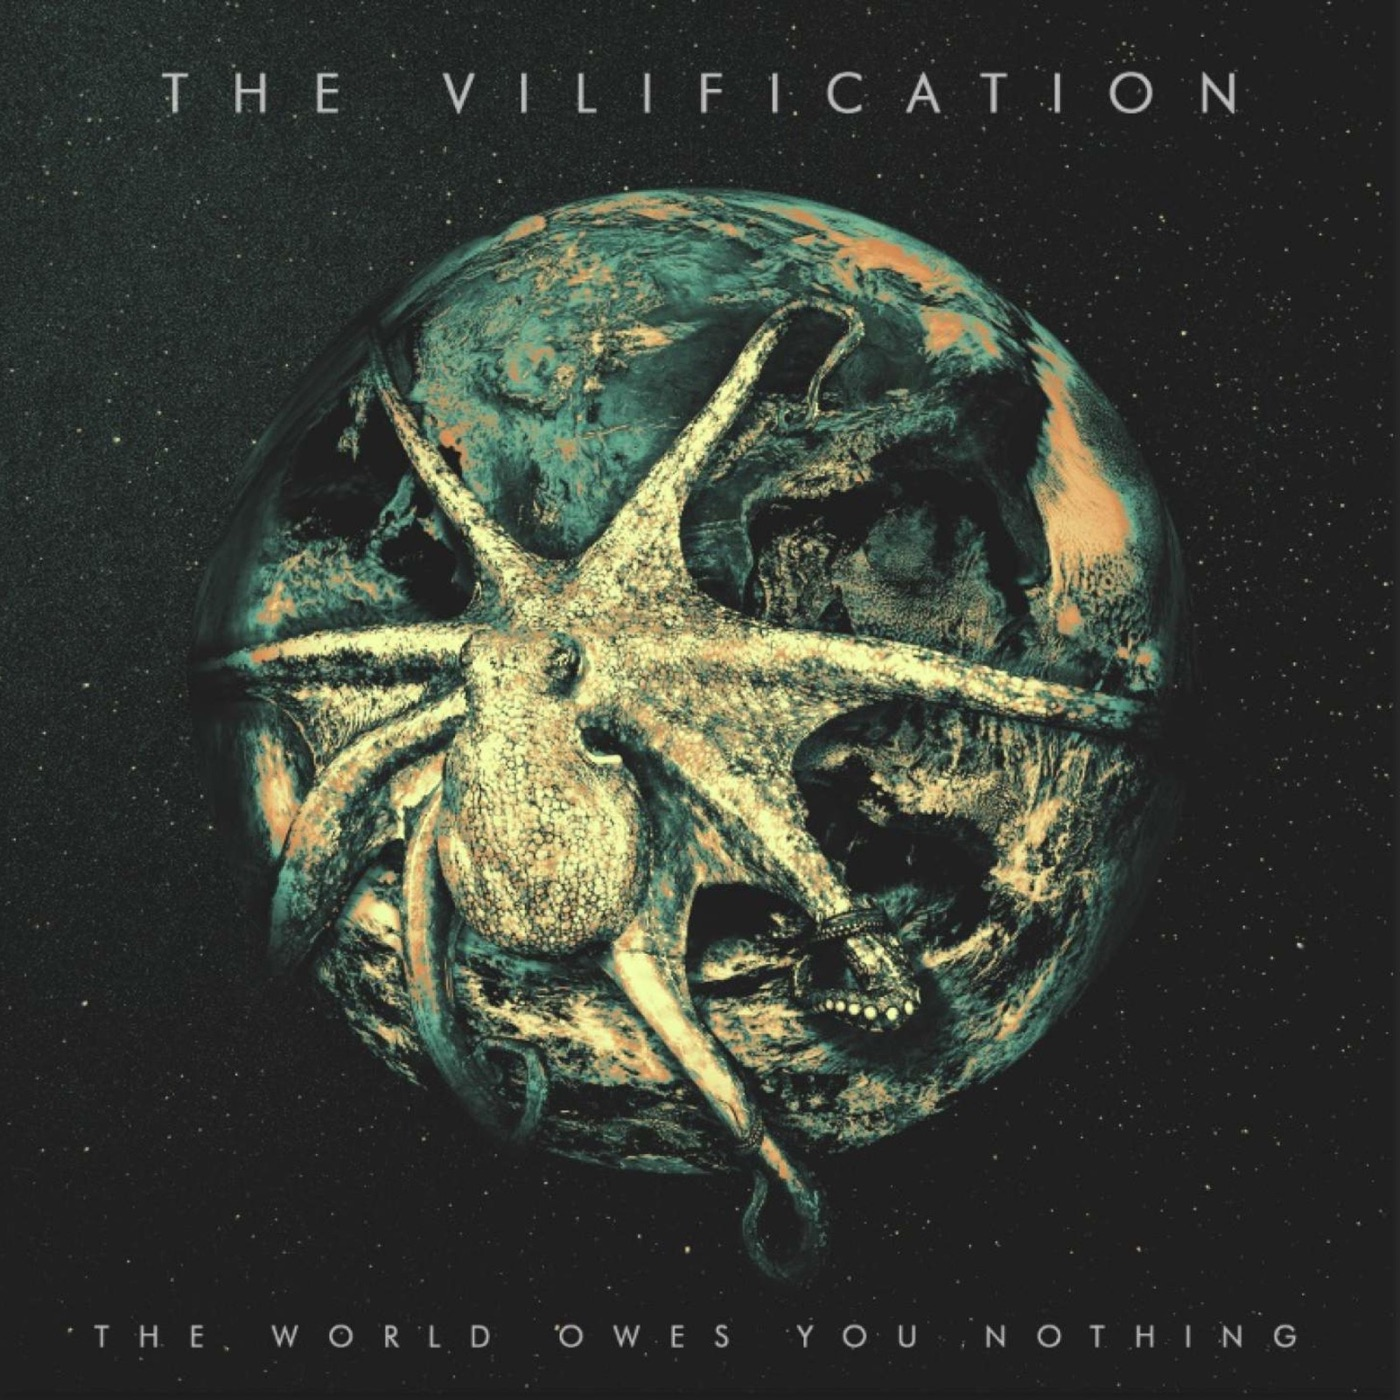 The Vilification - The World Owes You Nothing [EP] (2018)